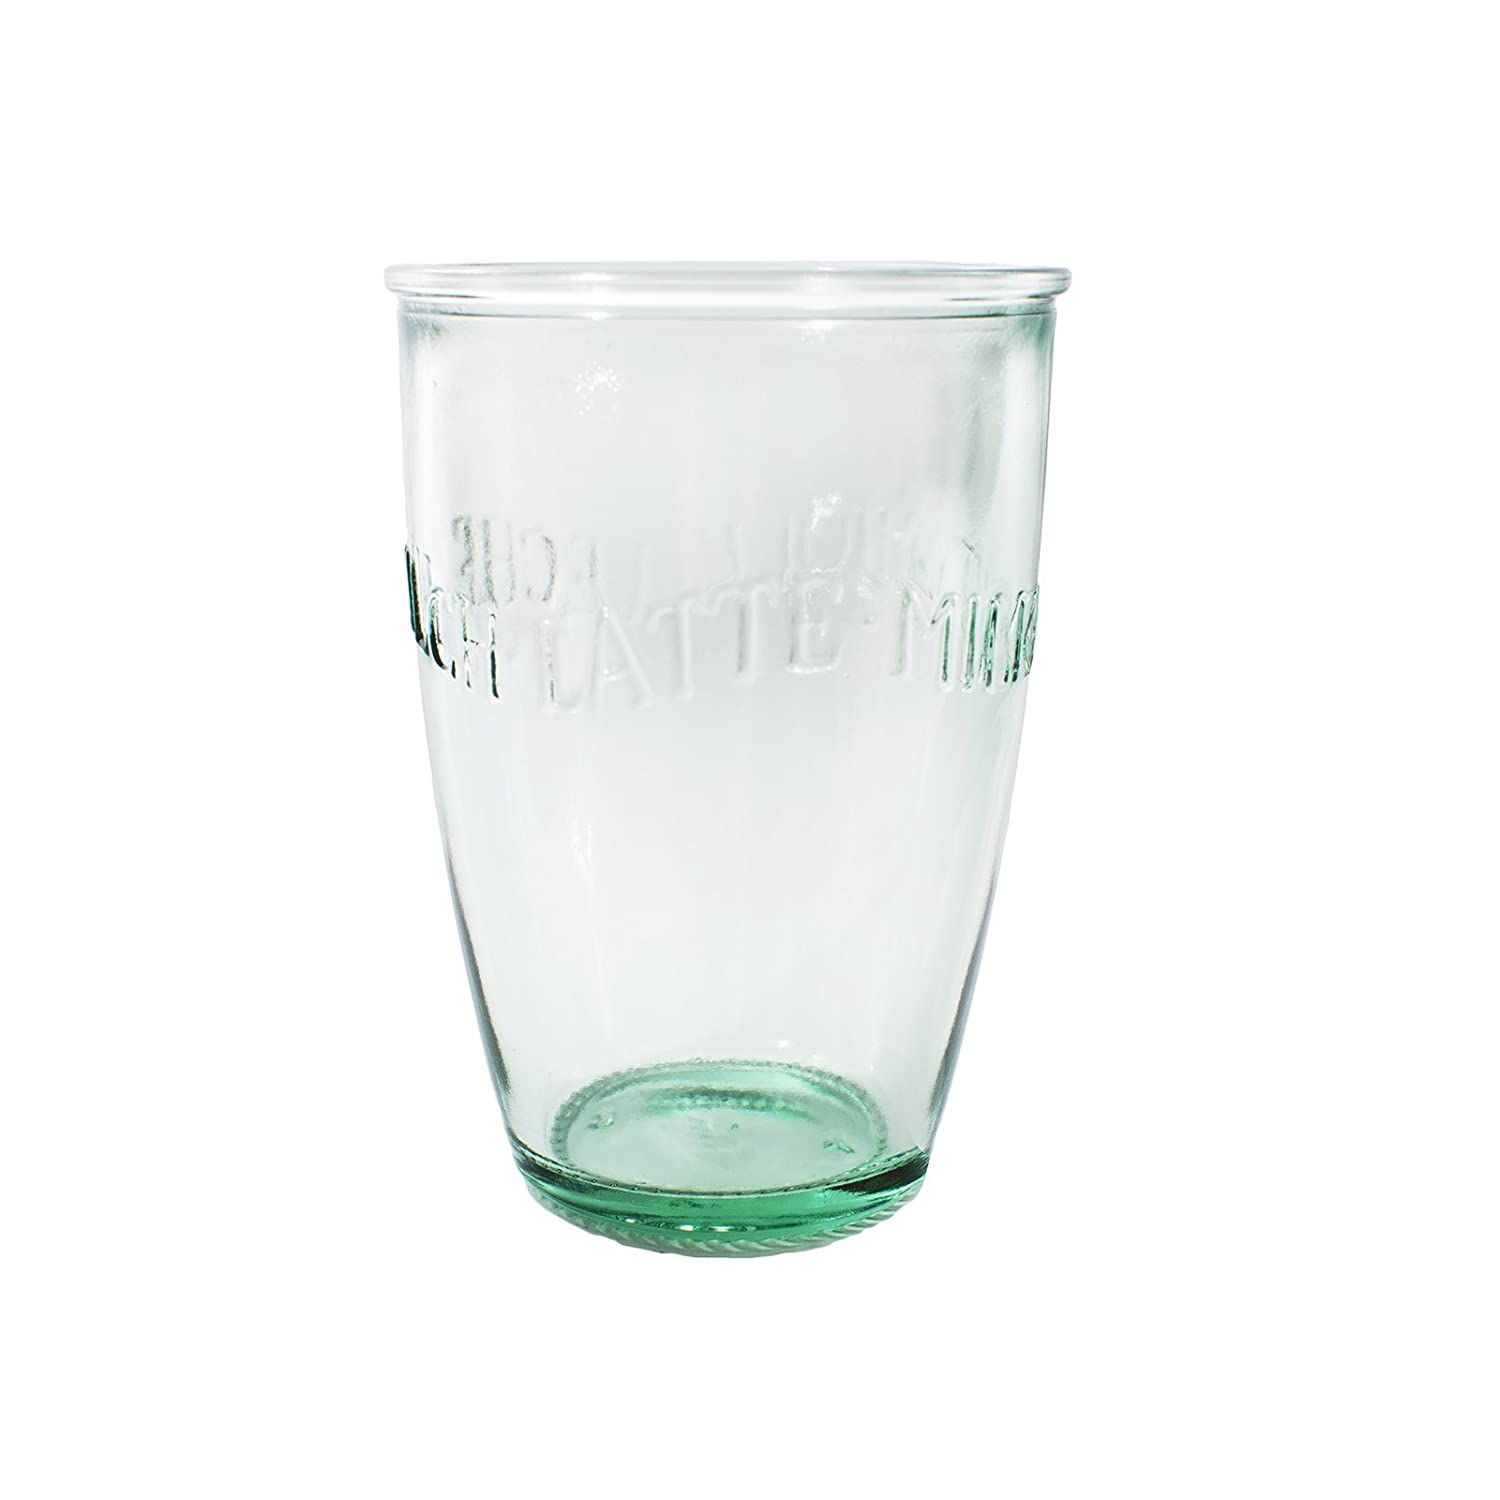 Amici Home Z7AI8130S6R Euro Milk Recycled Green Glass Drinkware Italian Made, 13 Fluid Ounce Capacity Each Set of 6 Clear